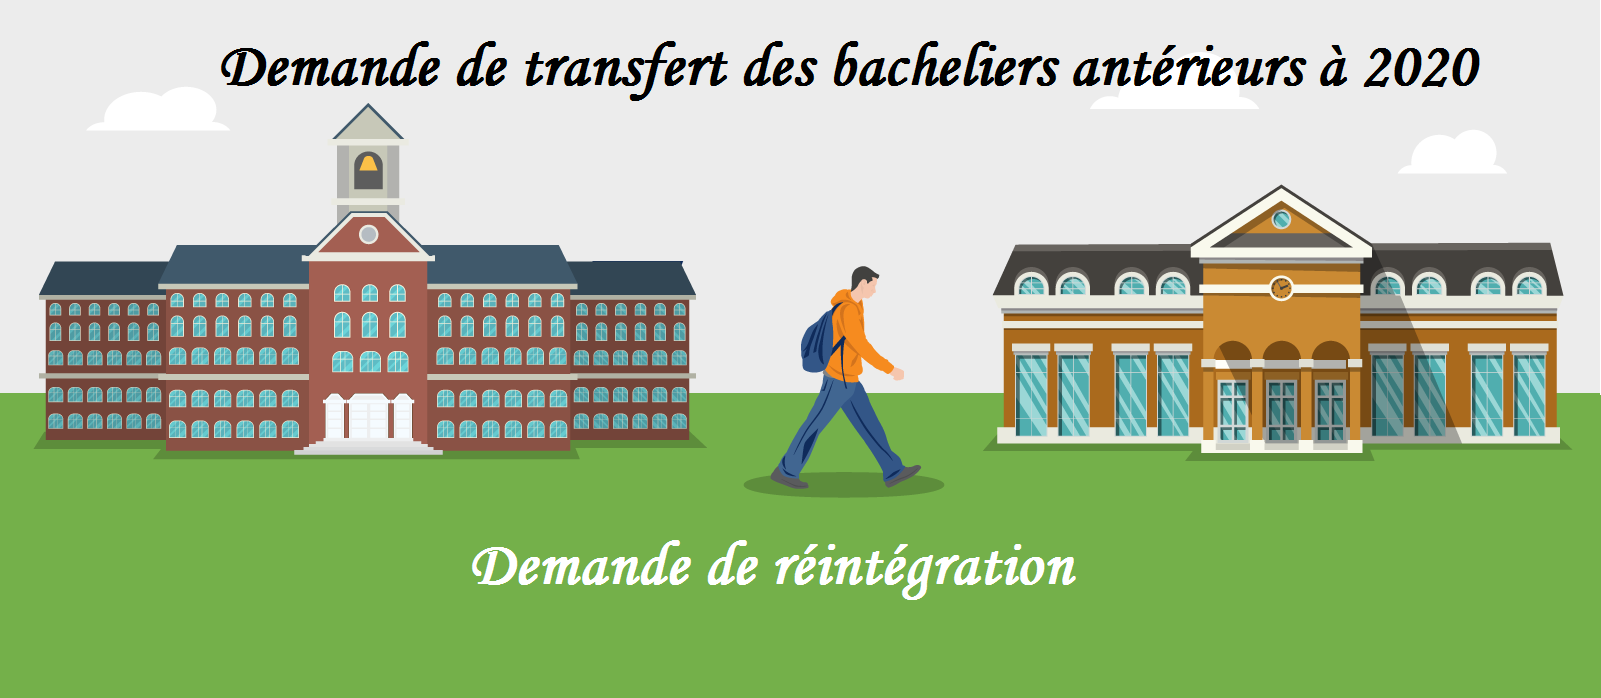 transfer-reintegration